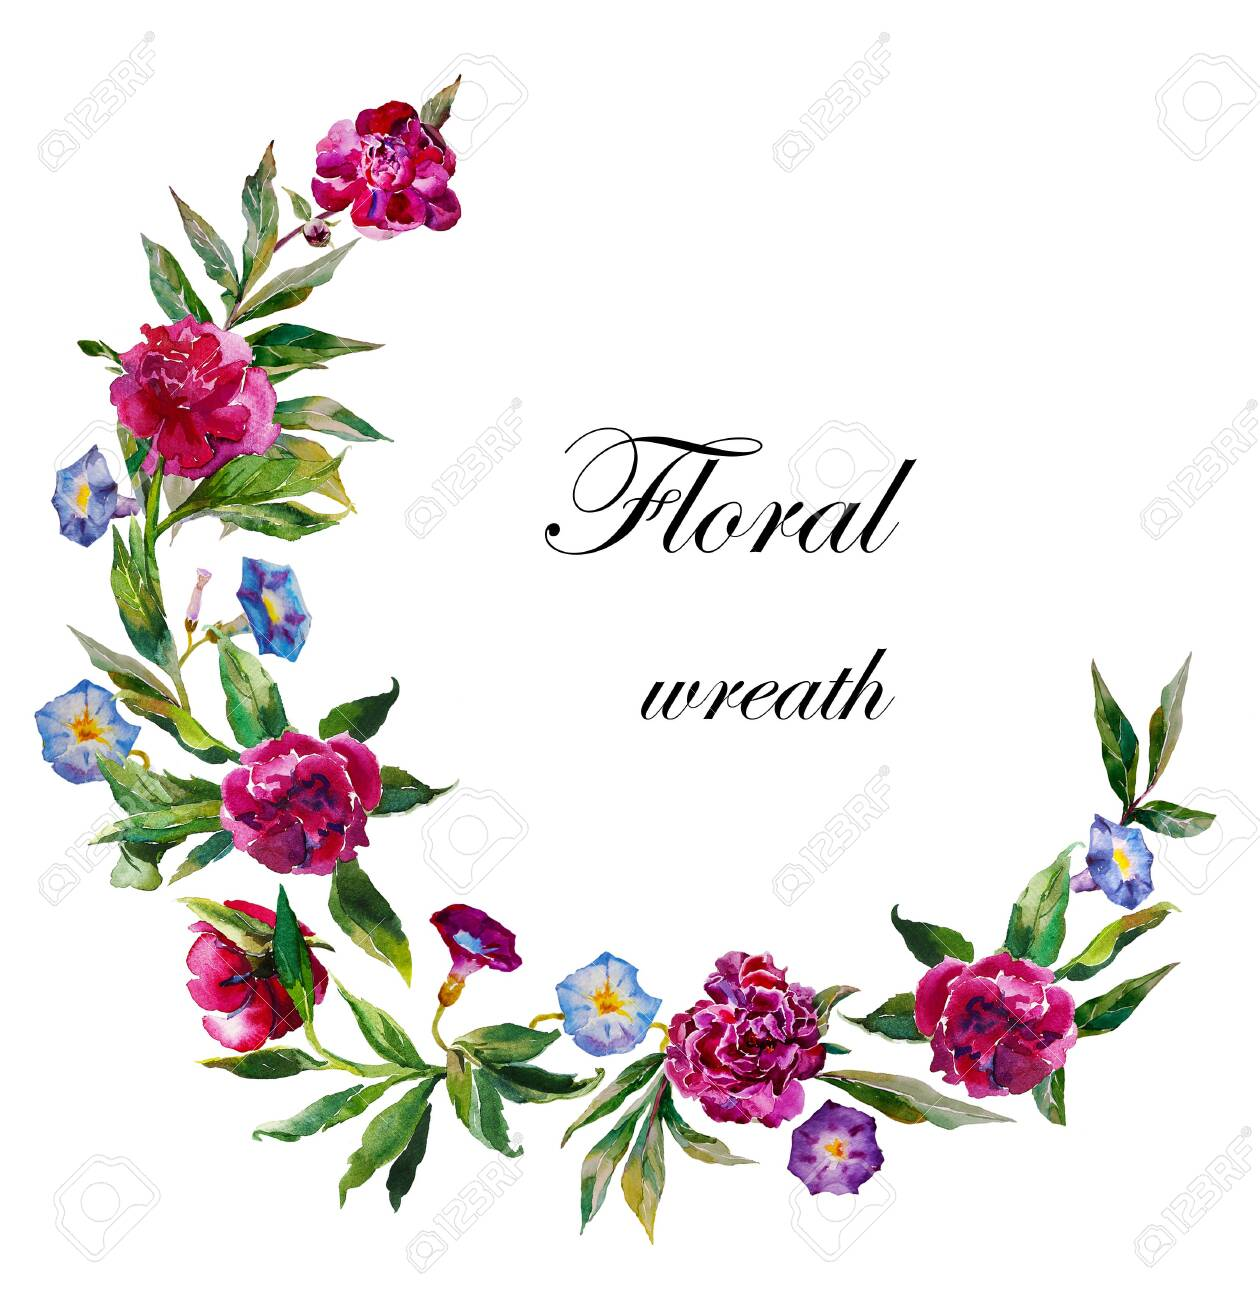 watercolor peony wreath garland. Vibrant floral circle pattern with dark peonies and blue and purple convolvulus isolated on white background - 141411169